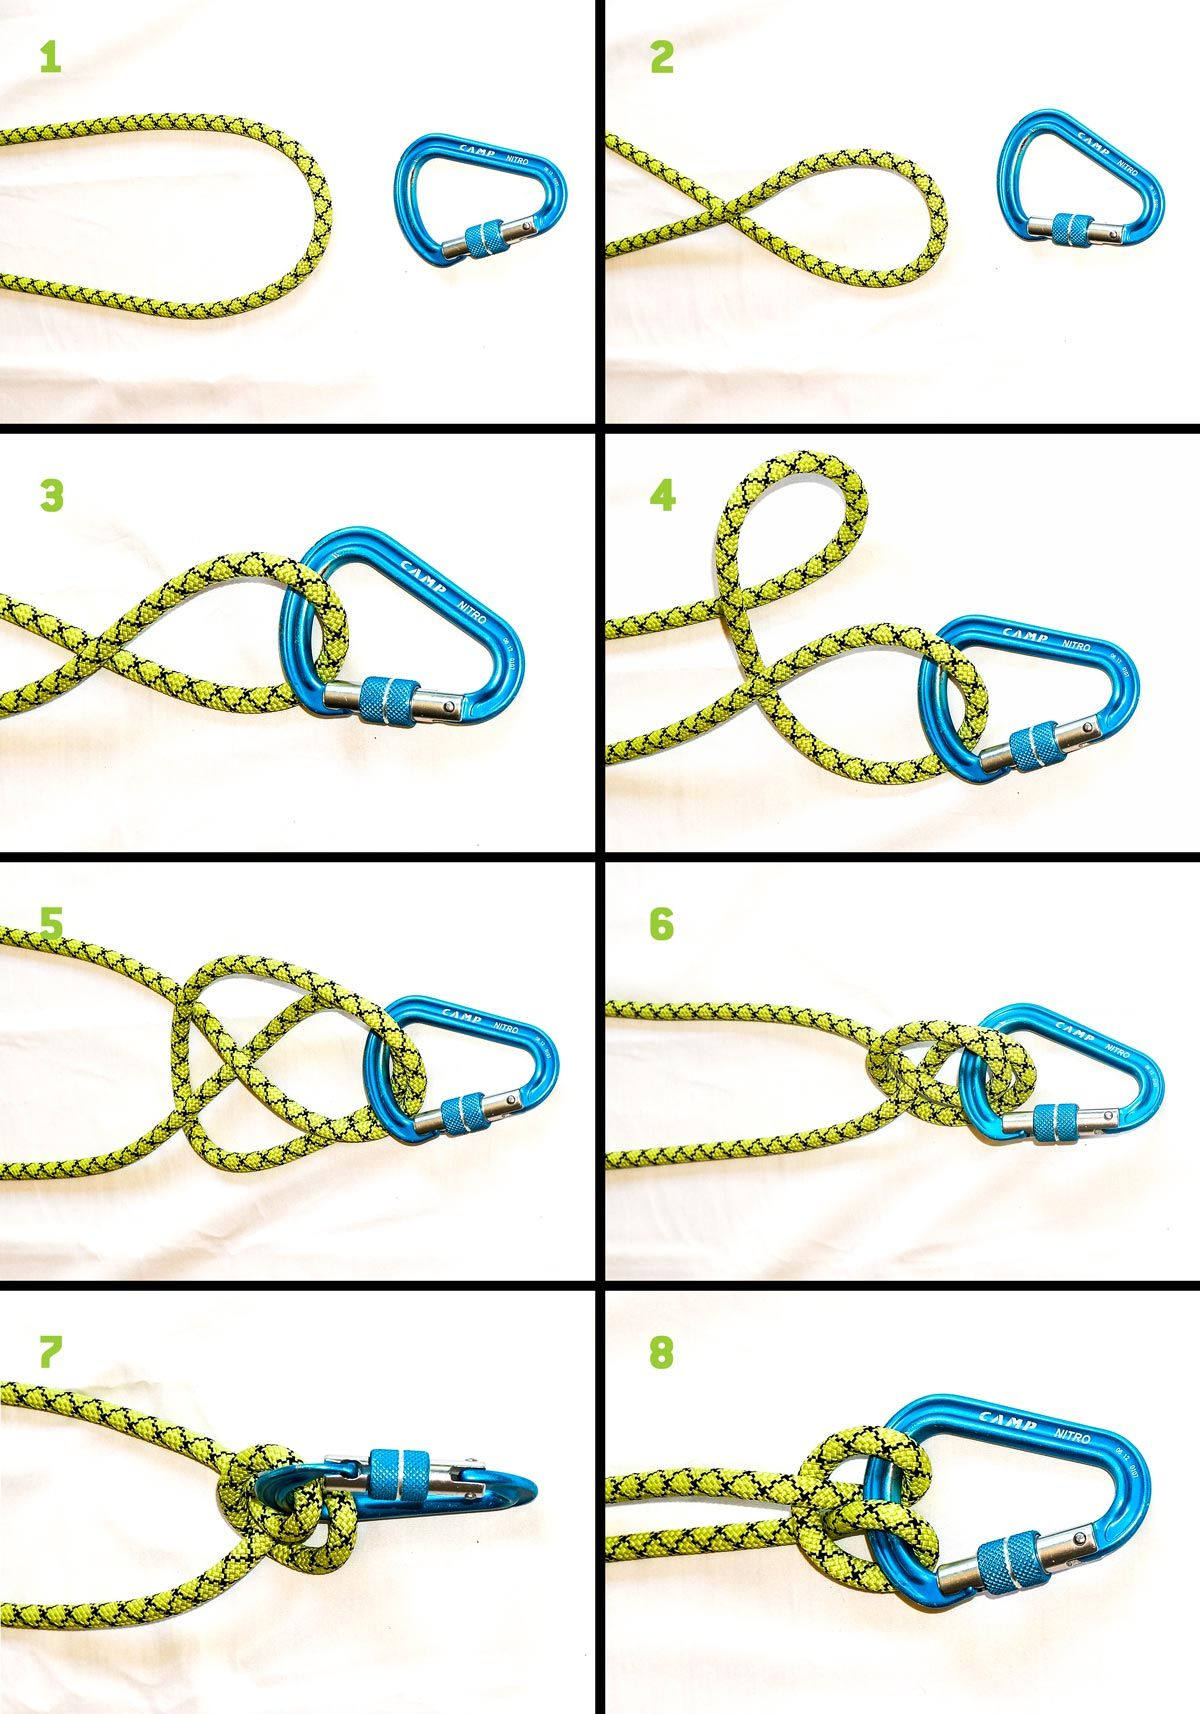 NeedtoKnow Climbing Knots Clove Hitch (With images